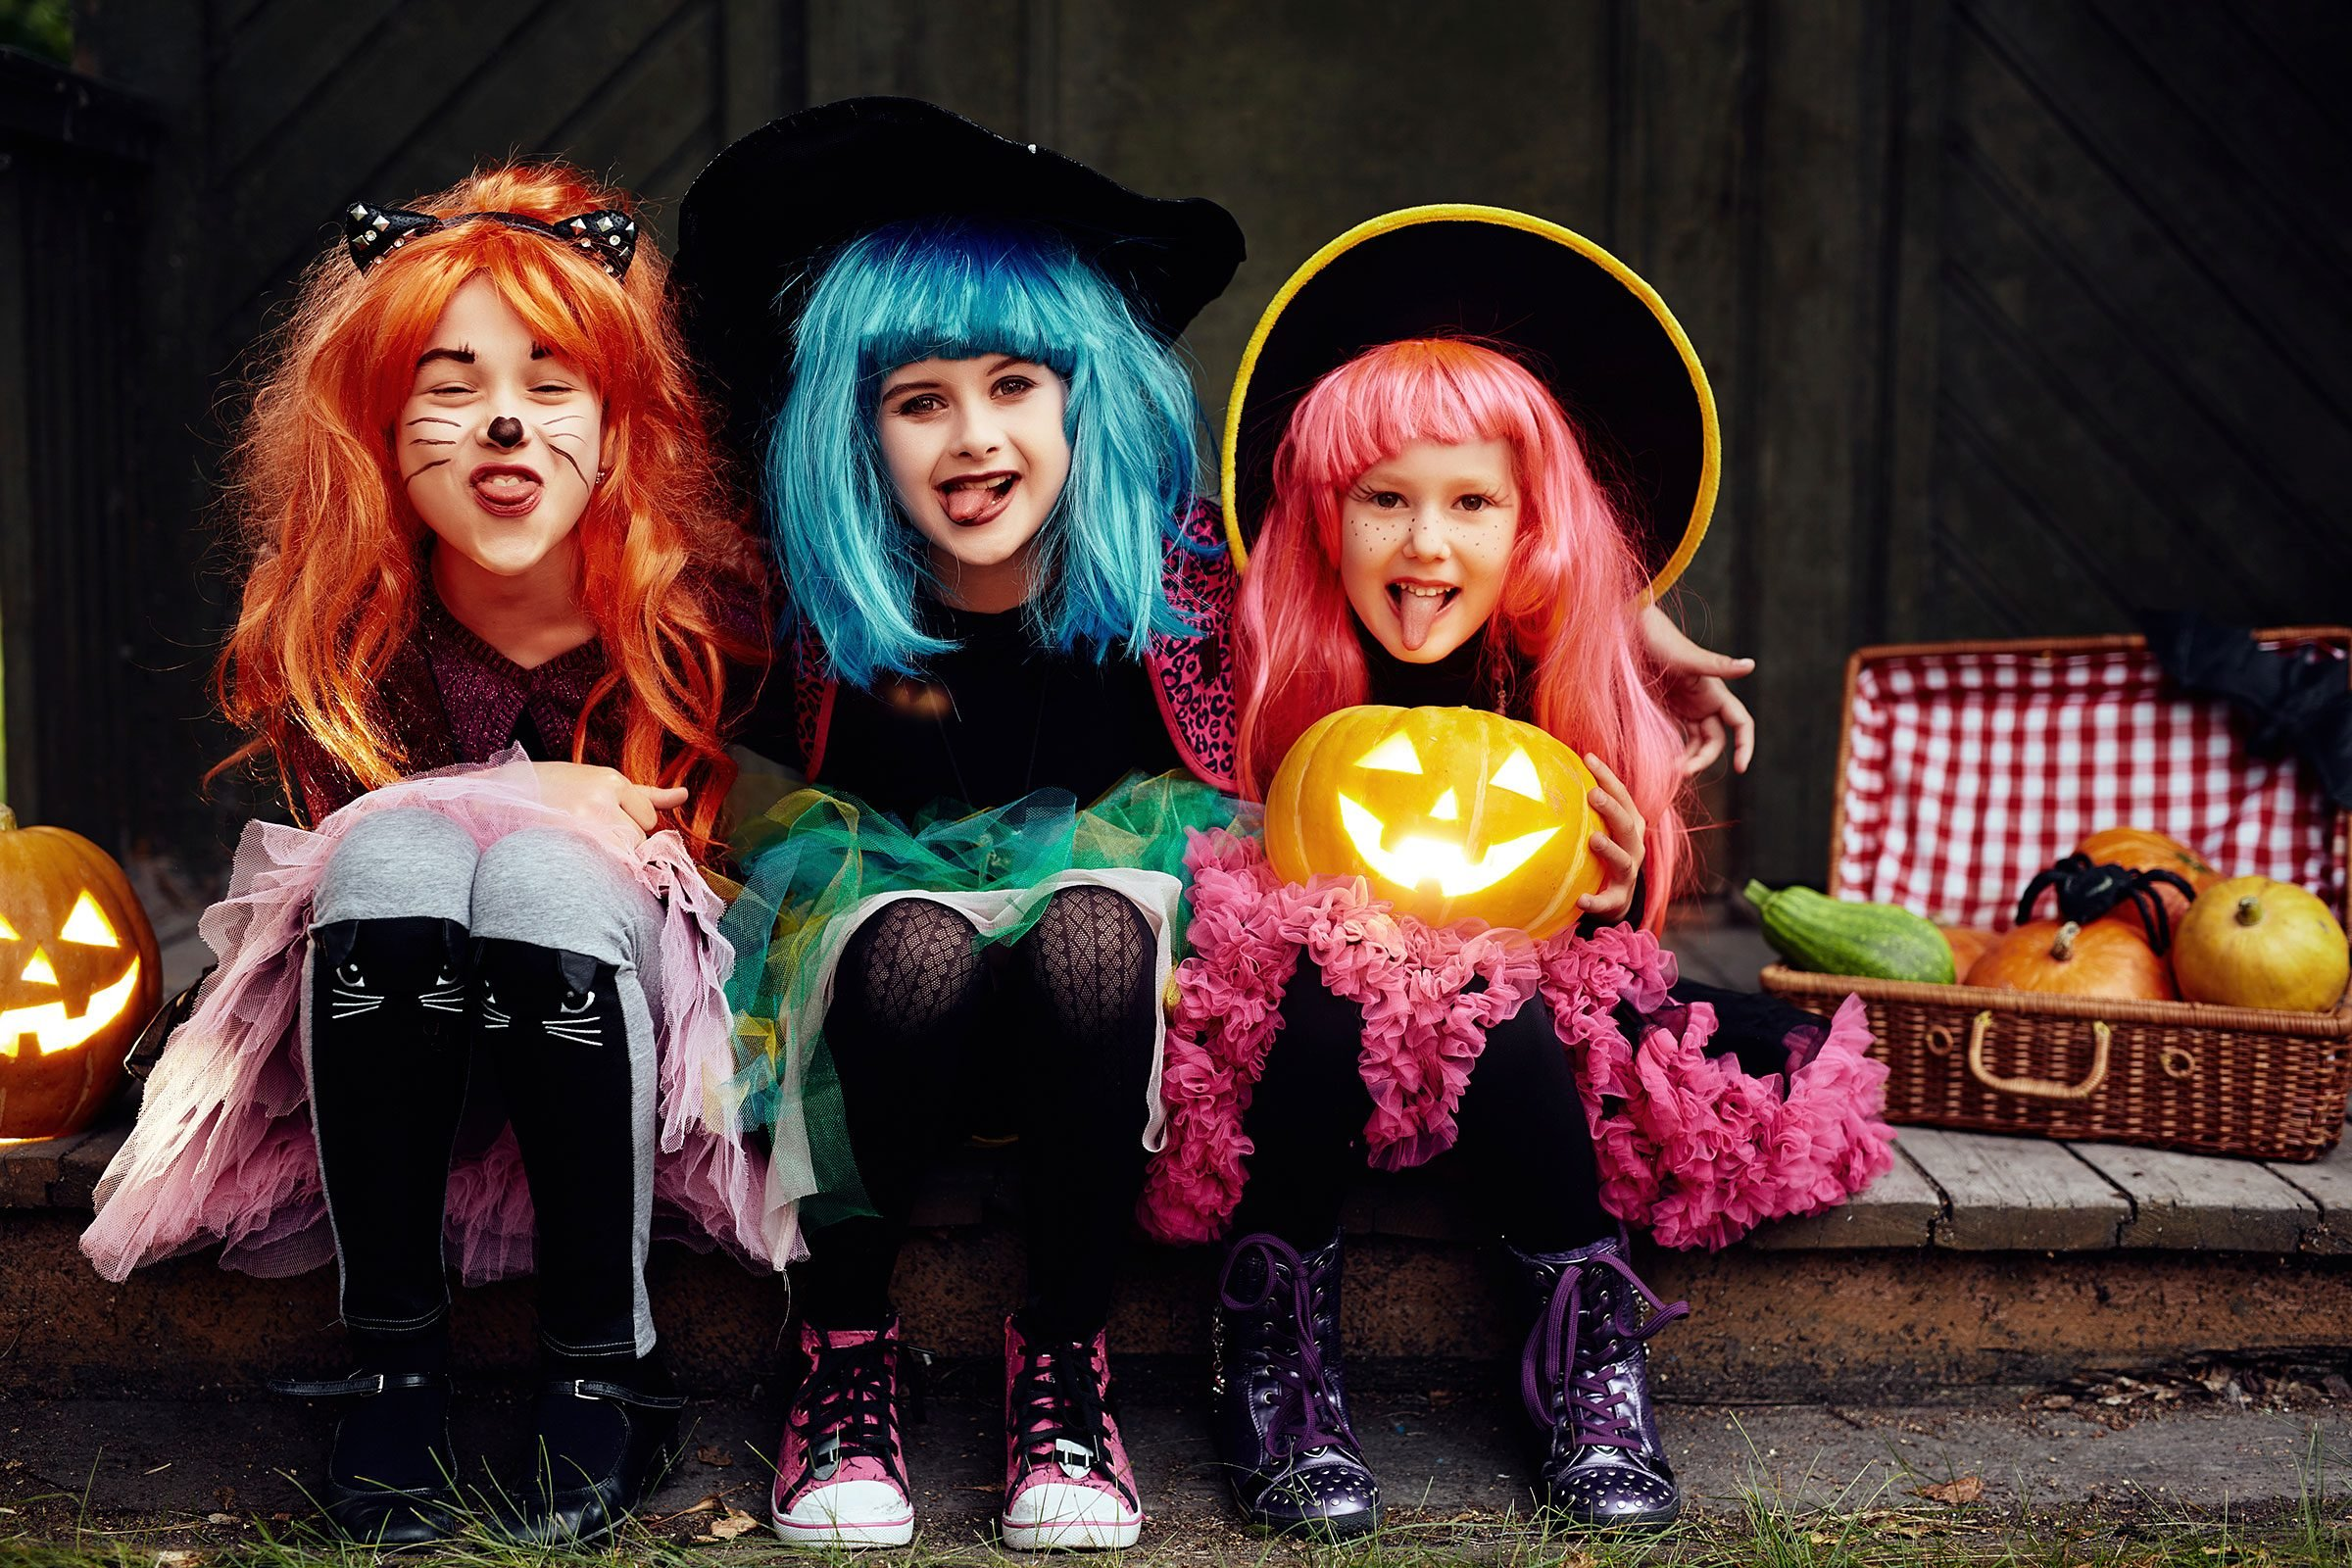 00-things-about-halloween-girls-costumes